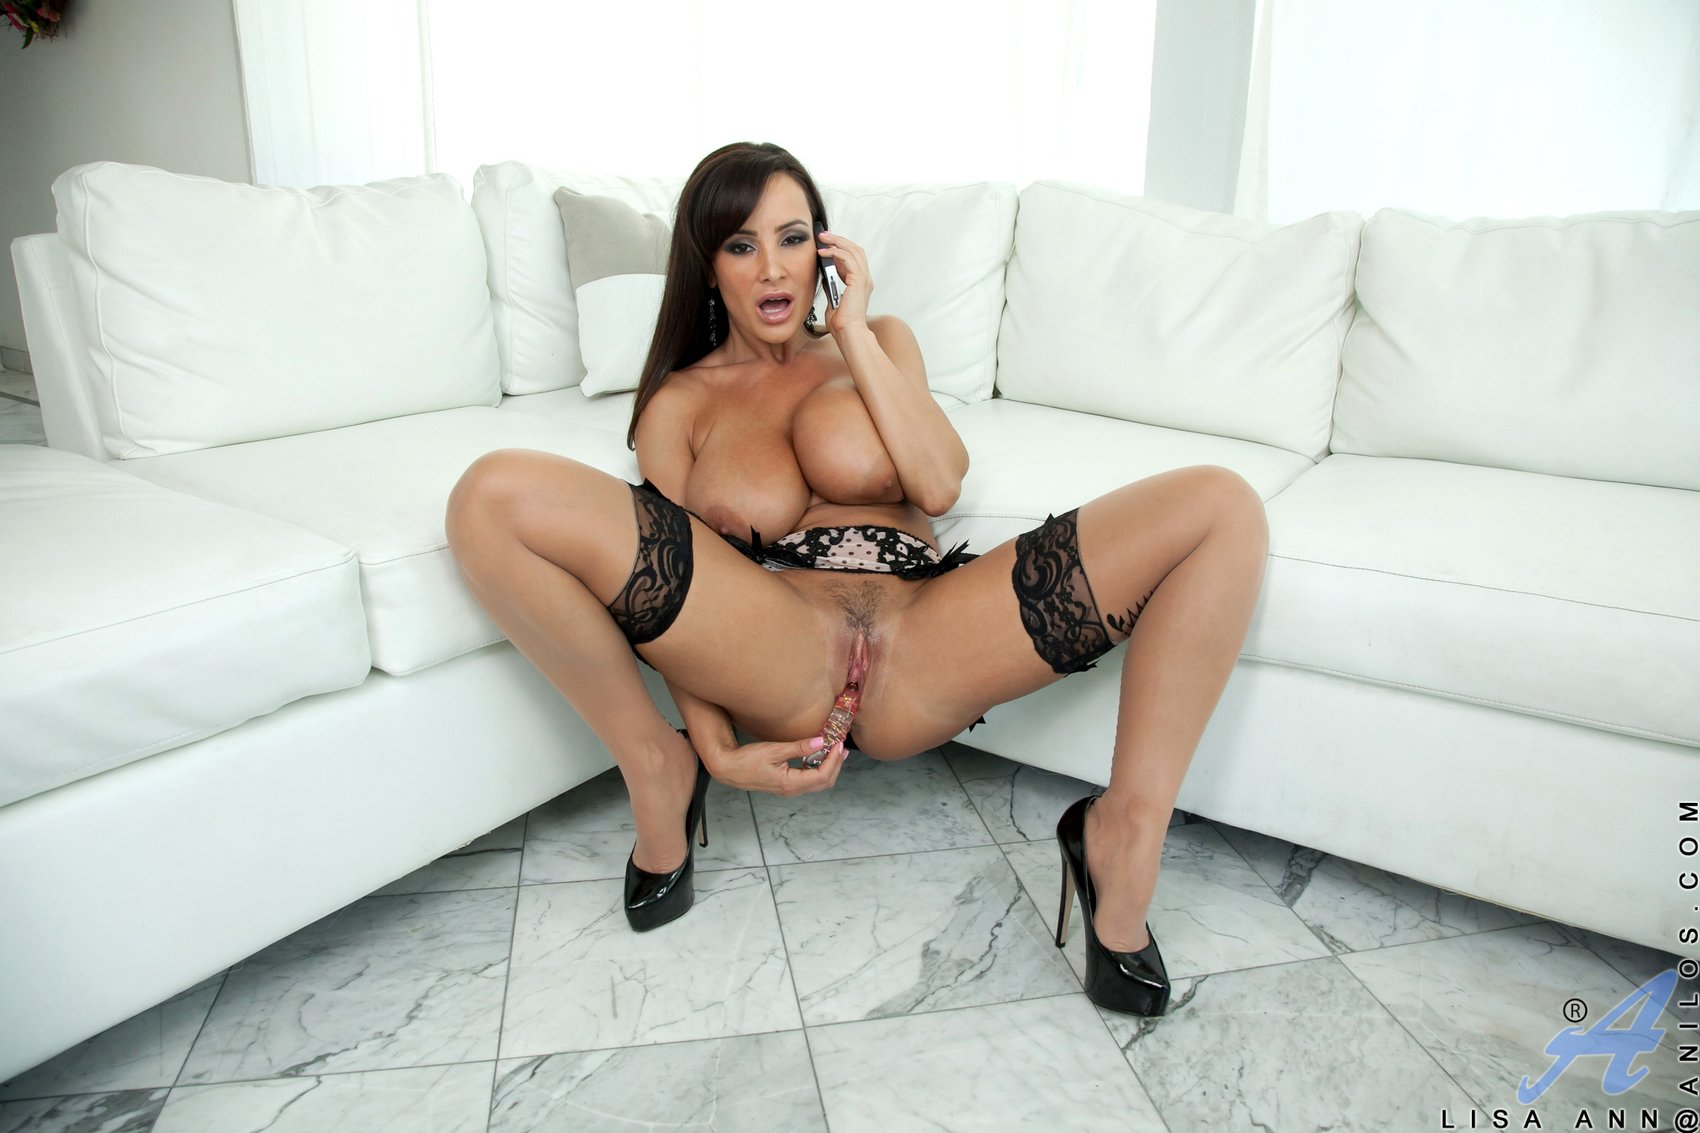 Understand this Lisa ann porn posing are not